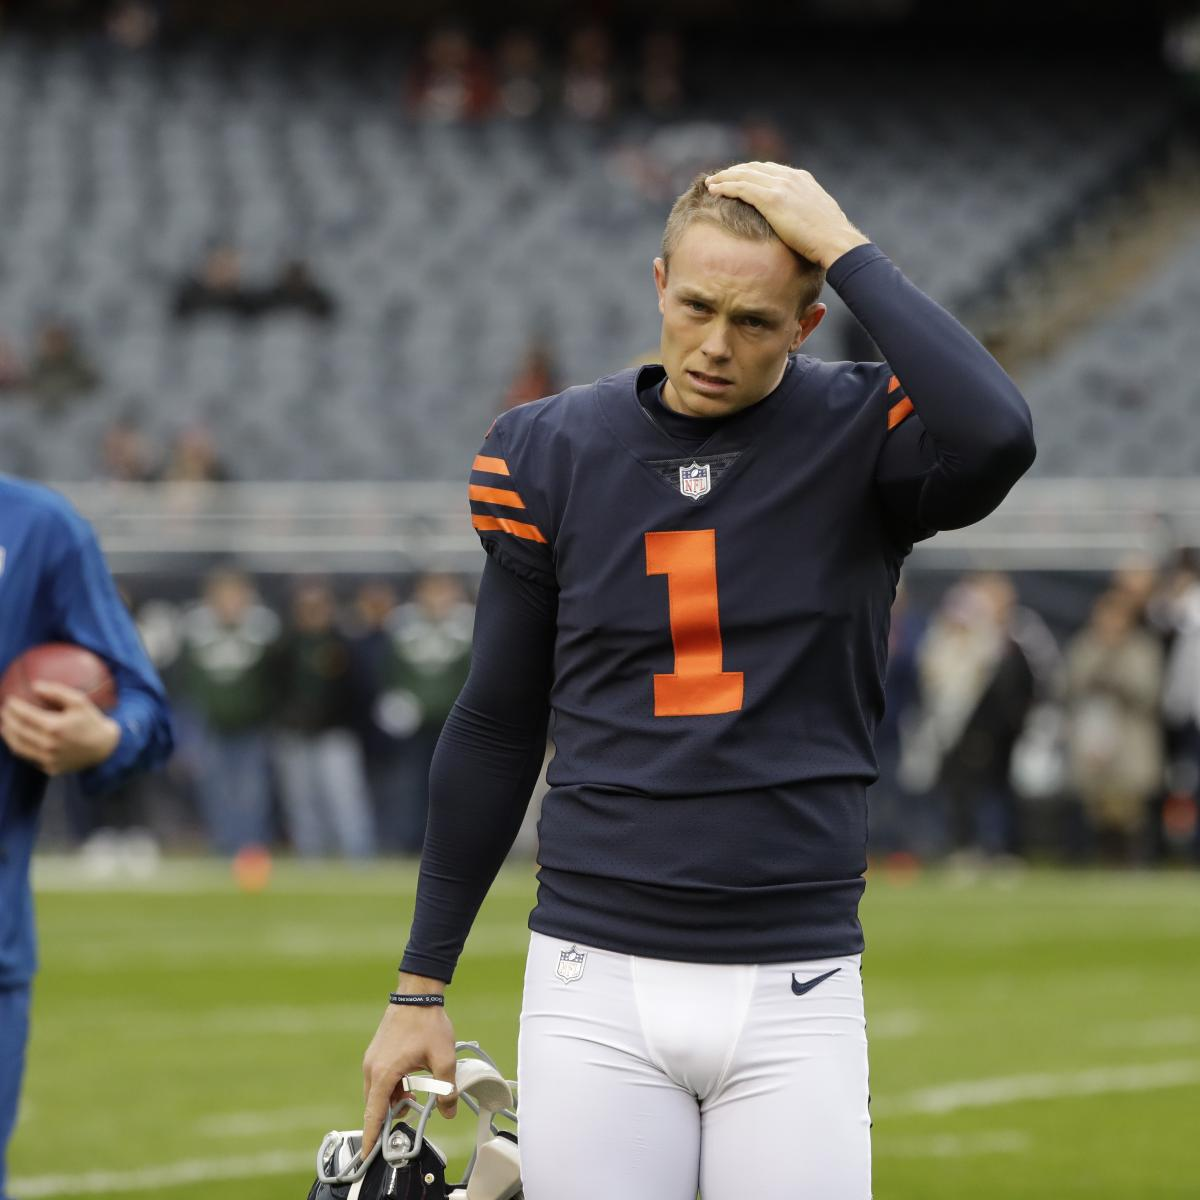 554182d693a Cody Parkey to Kick Extra Practice FGs at Soldier Field After Week 10  Struggles